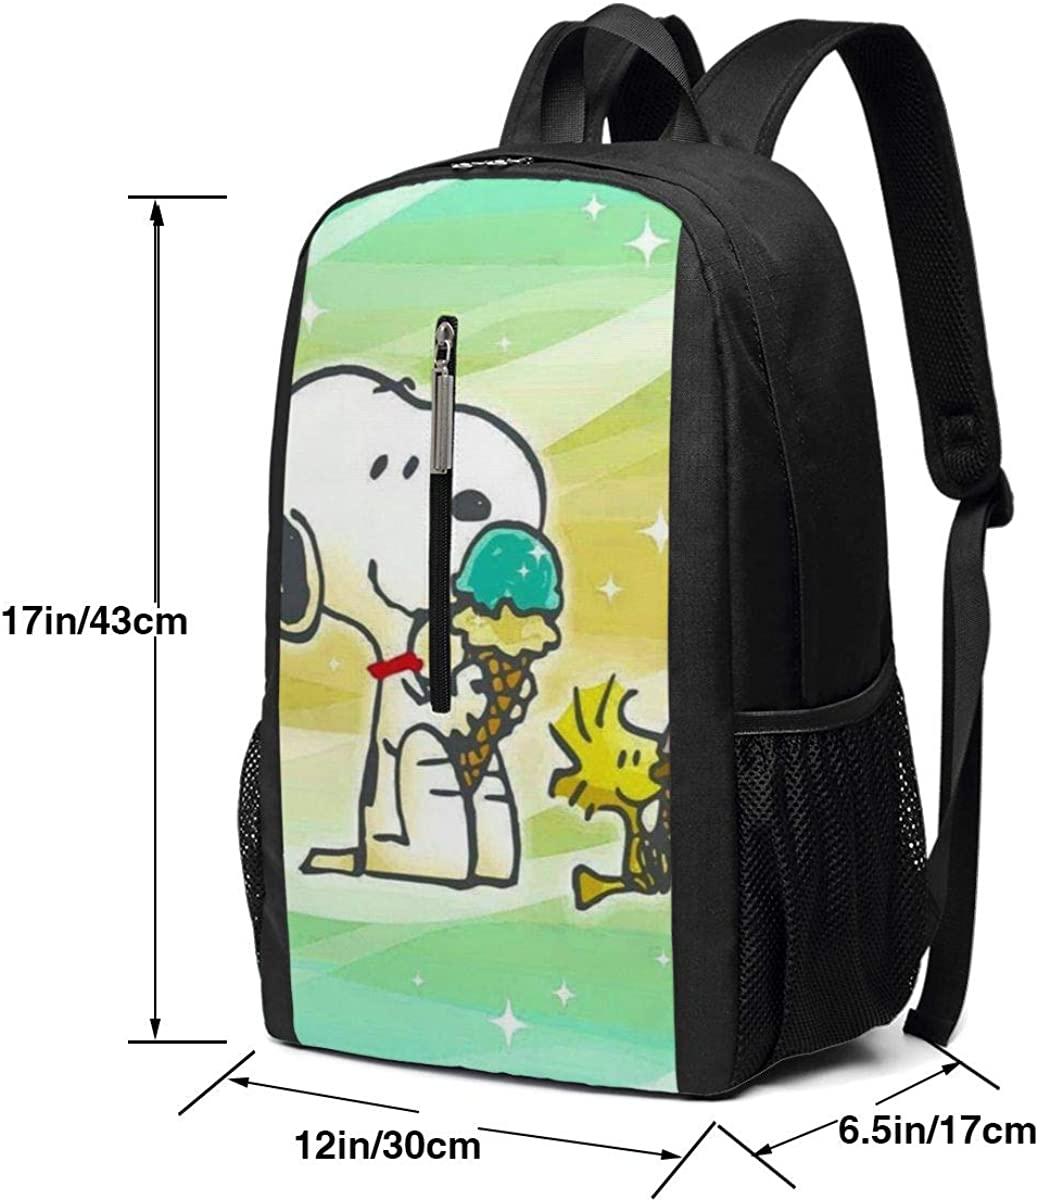 Backpack 17 Inch Snoopy With Ice Cream Large Laptop Bag Travel Hiking Daypack For Men Women School Work